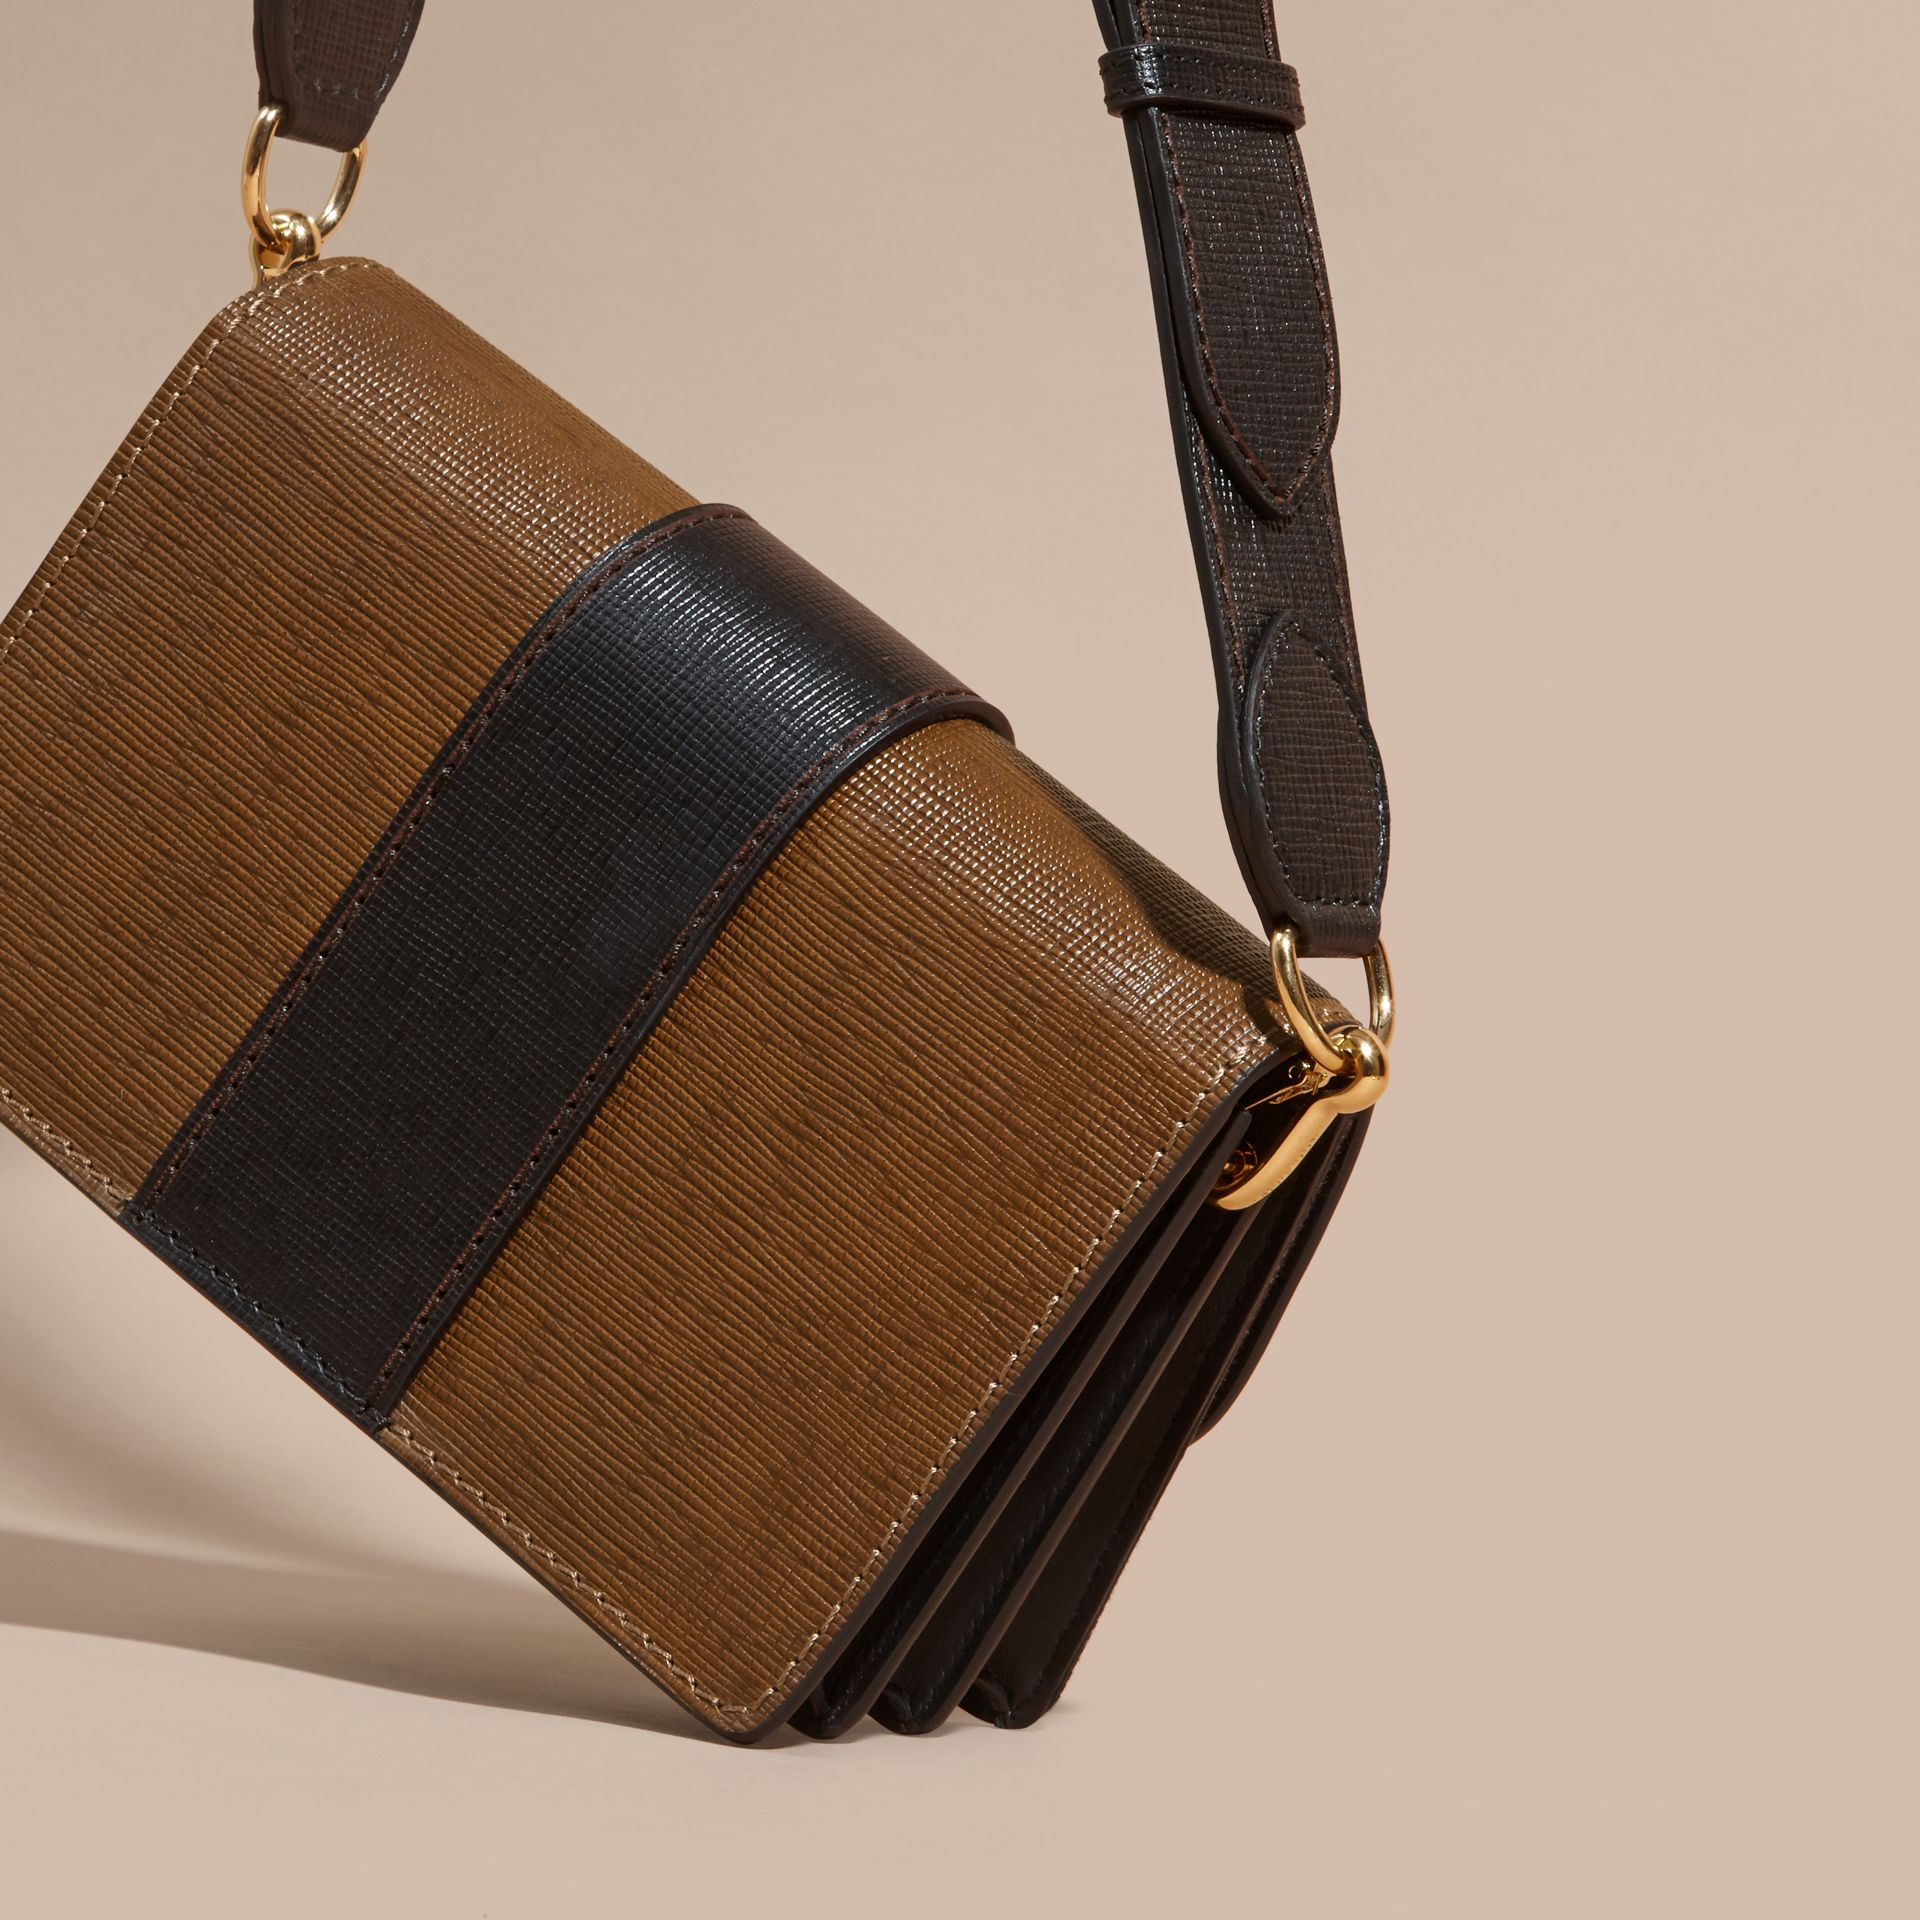 The Medium Buckle Bag in House Check und strukturiertem Leder Hellbraun/schwarz - Galerie-Bild 5